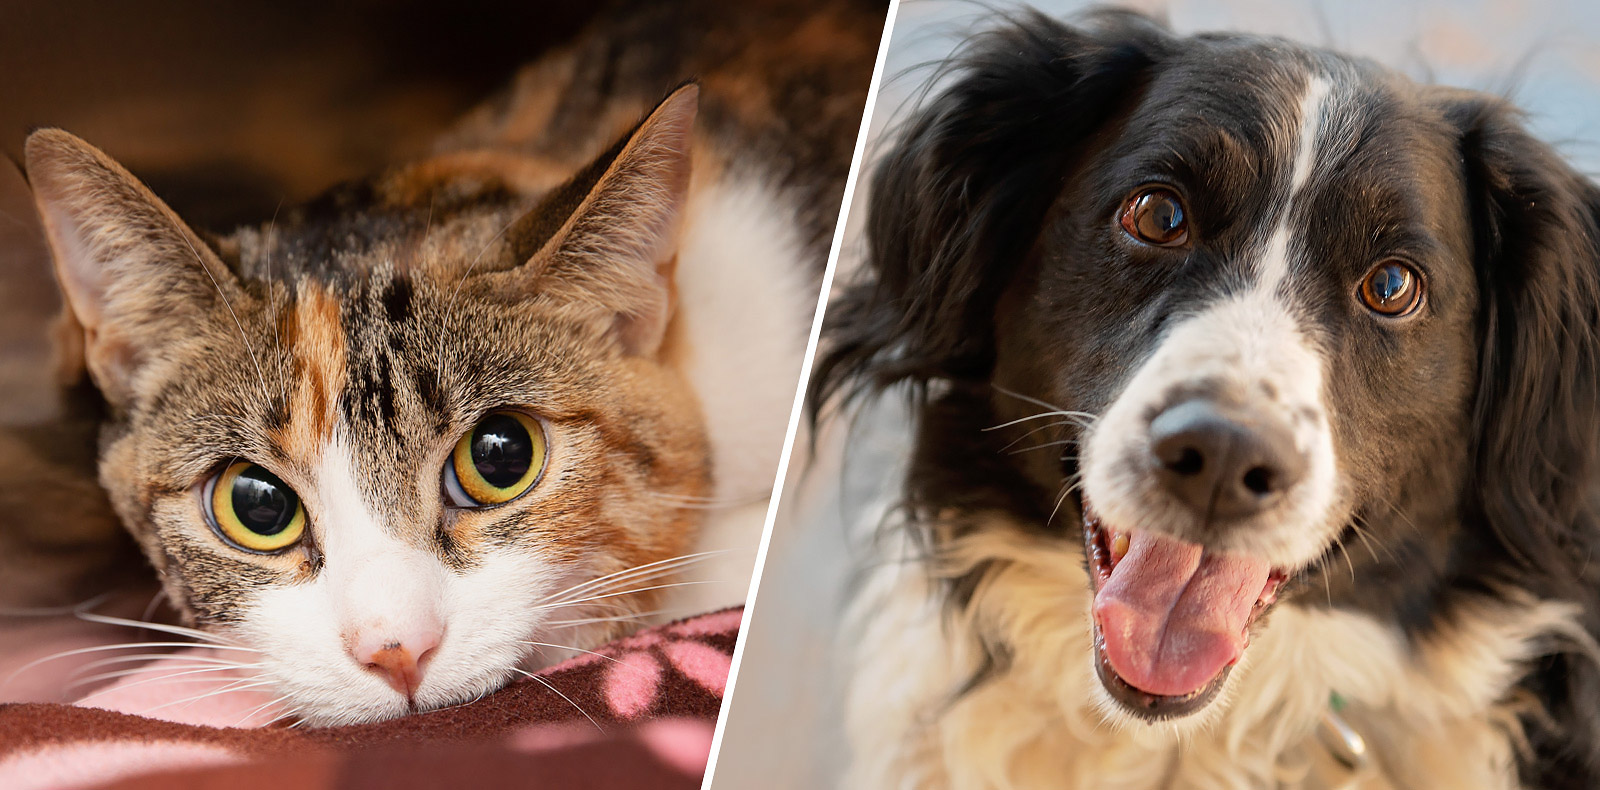 Adoptable cat and dog at Best Friends Animal Sanctuary